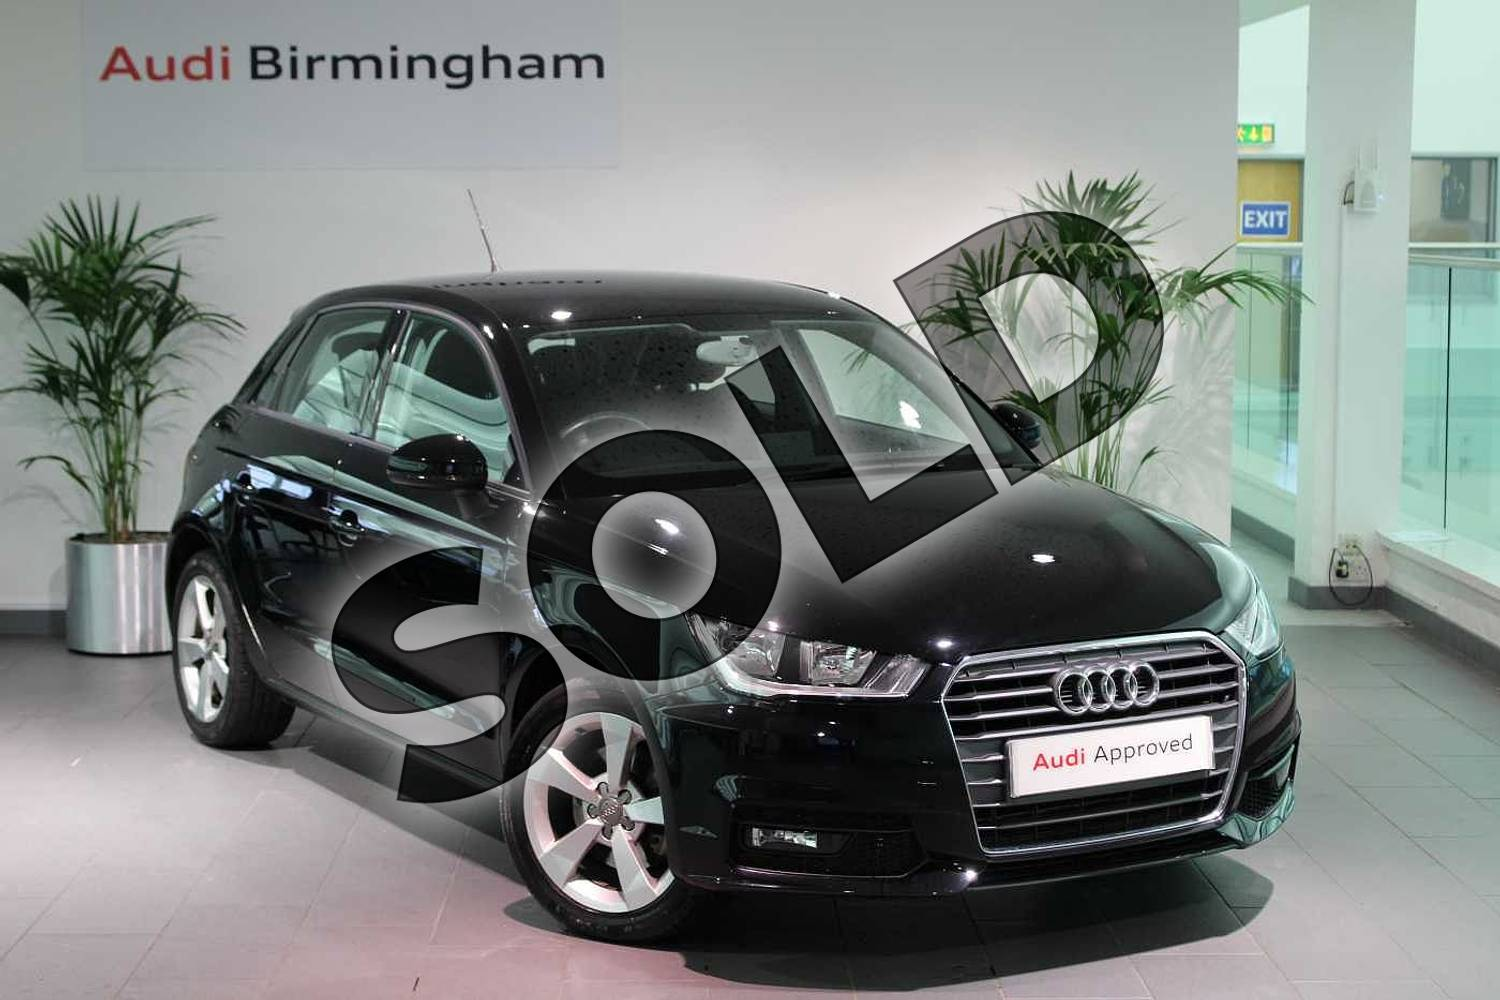 2015 Audi A1 Sportback 1.4 TFSI Sport 5dr in Brilliant Black at Birmingham Audi